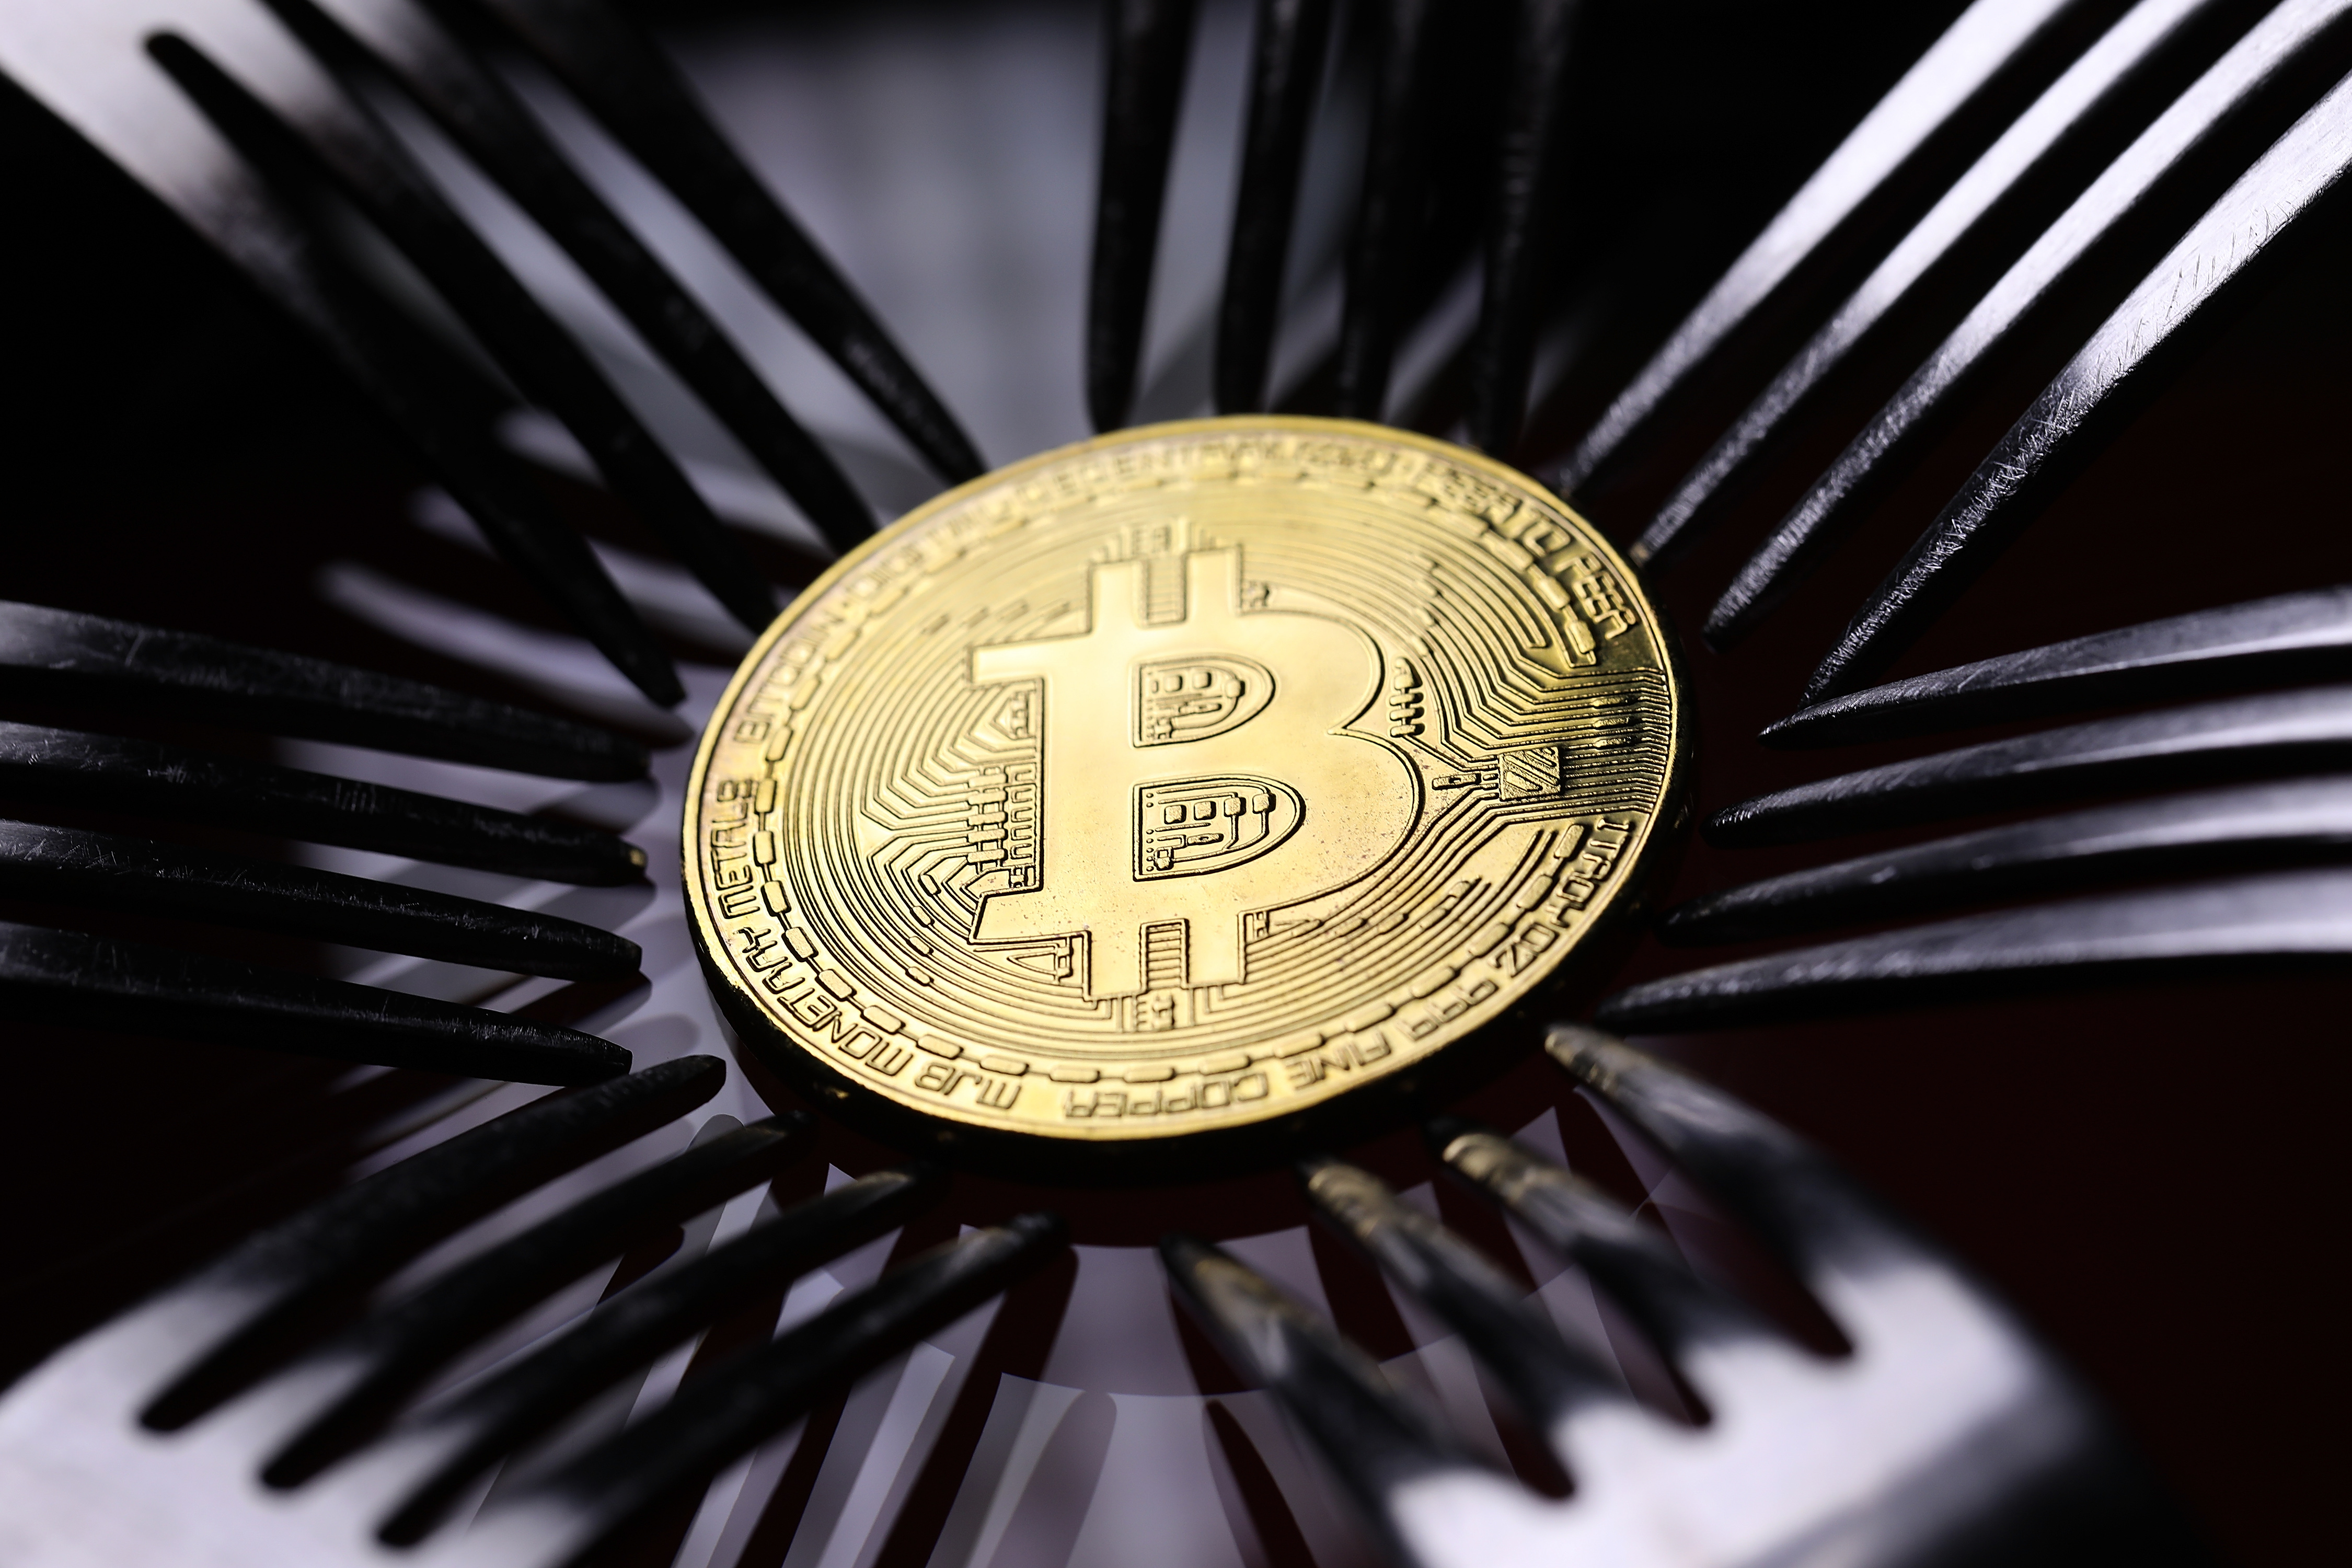 A visual representation of the digital Cryptocurrency, Bitcoin on December 07, 2017 in London, England. Cryptocurrencies including Bitcoin, Ethereum, and Lightcoin have seen unprecedented growth in 2017, despite remaining extremely volatile.